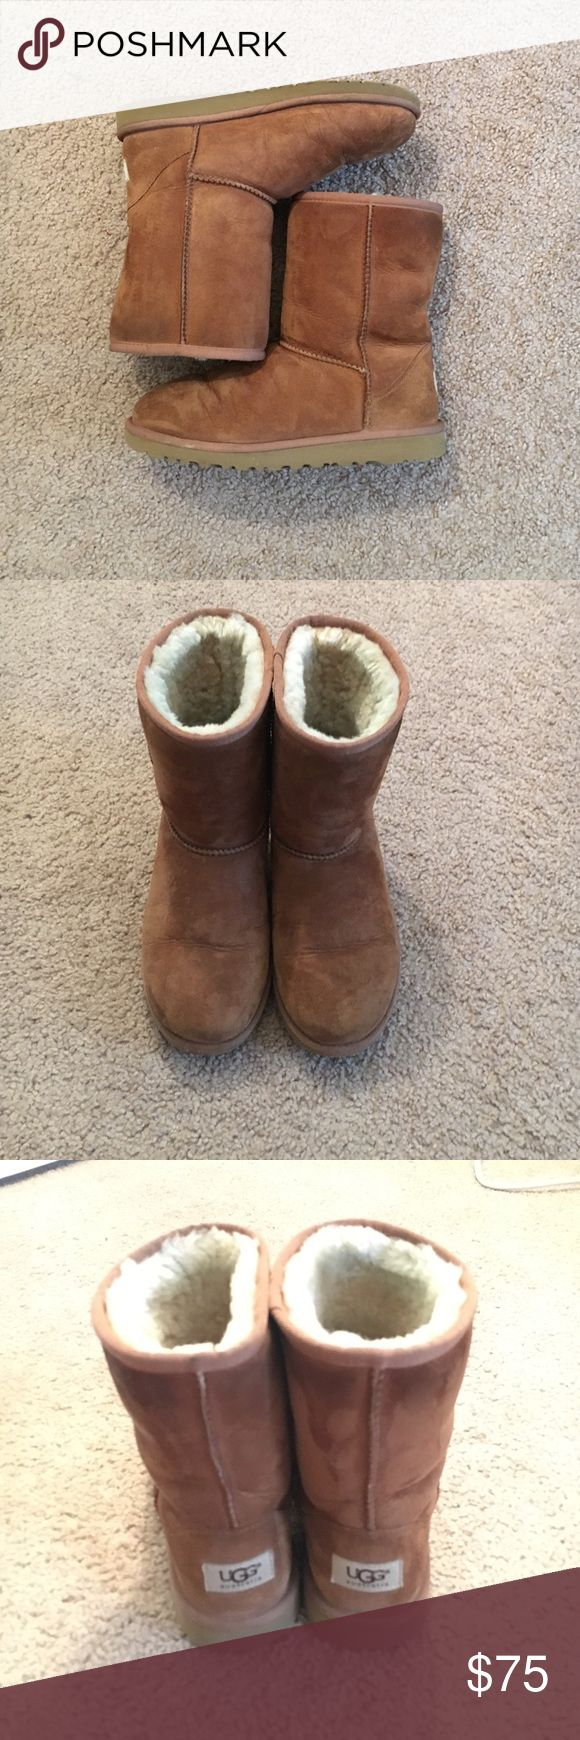 Classic Short Ugg boots in Chestnut Gently used chestnut Ugg boots. They've been great for the winter months! Very warm and pretty much will go with everything because of the neutral color. There are little creases from wear in the front and back (as showed in pics above). I do have the original box that I store them in. Offers can be made. UGG Shoes Winter & Rain Boots